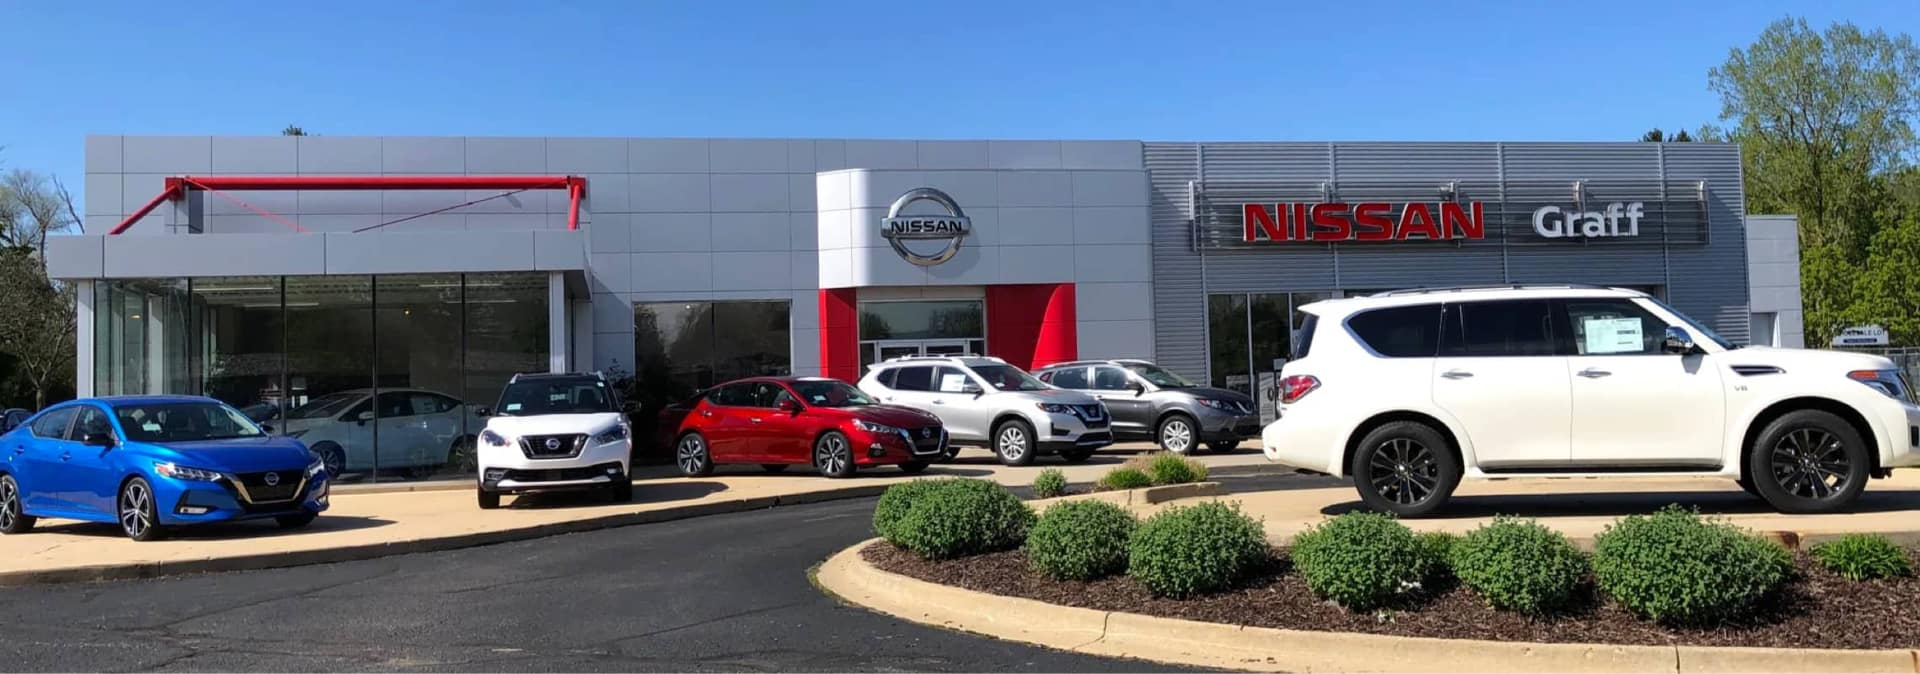 An exterior shot of the Graff Nissan dealership